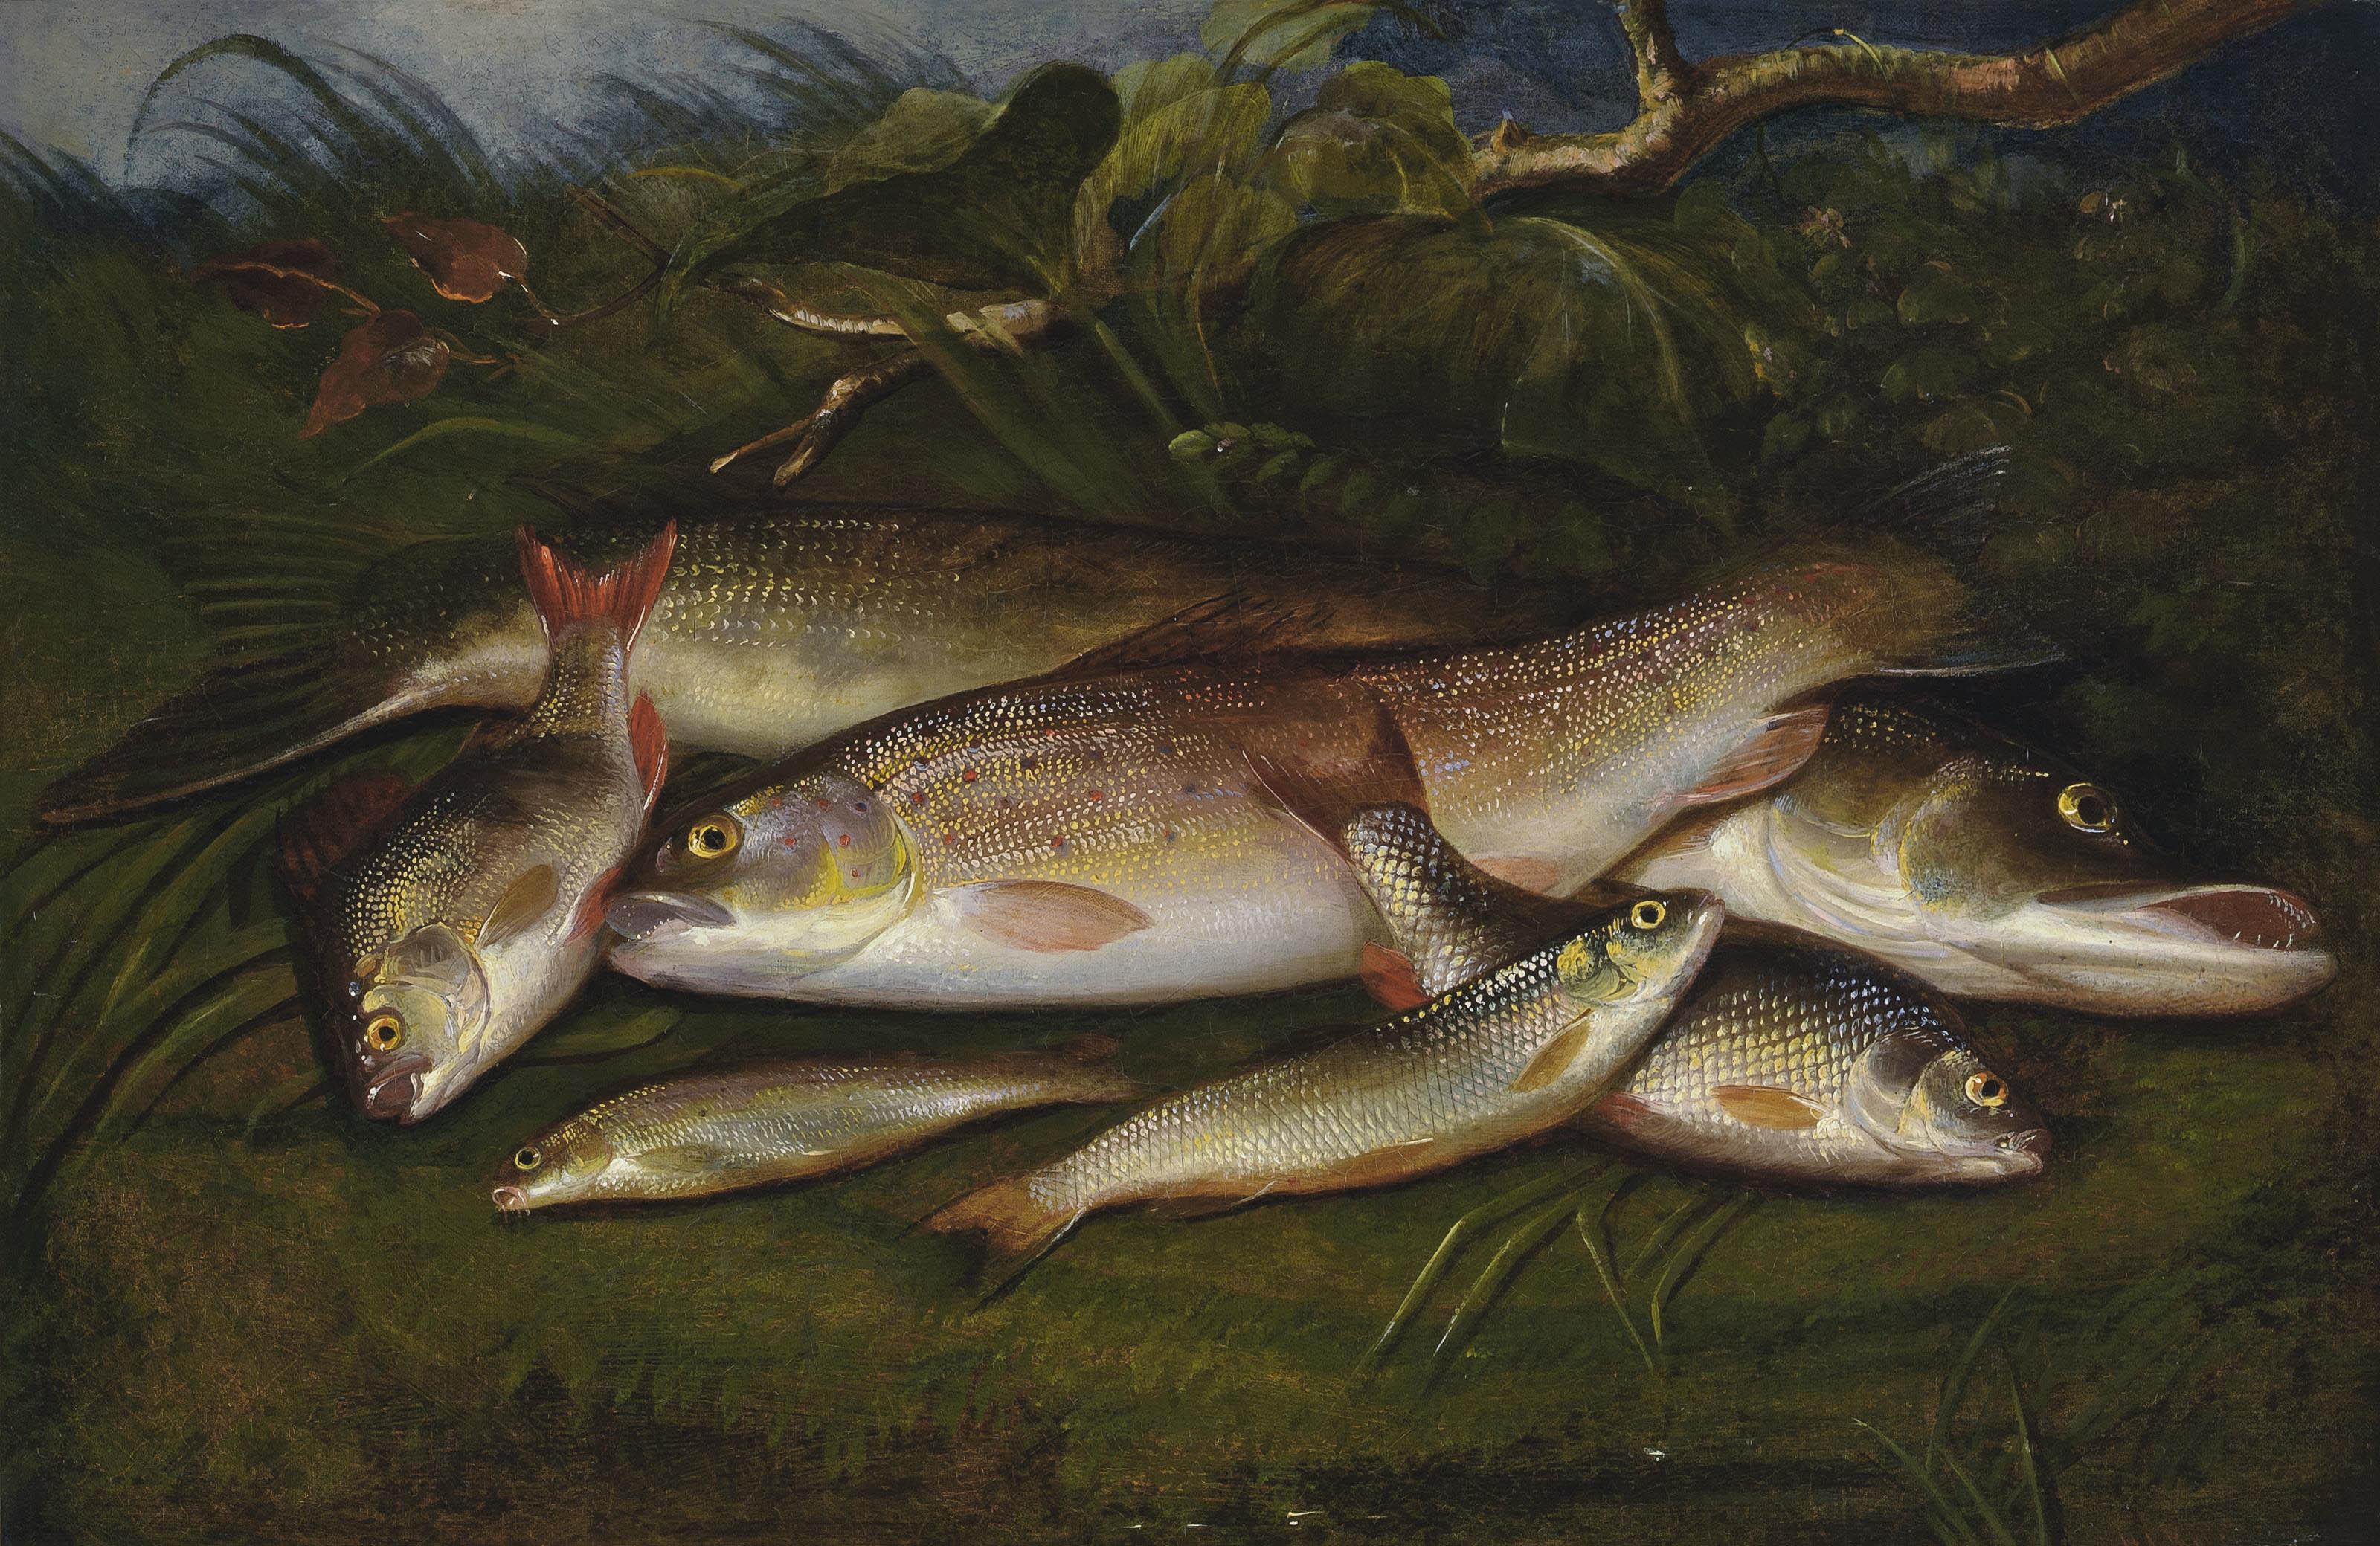 Trout, pike, roach, dace and gudgeon on a riverbank